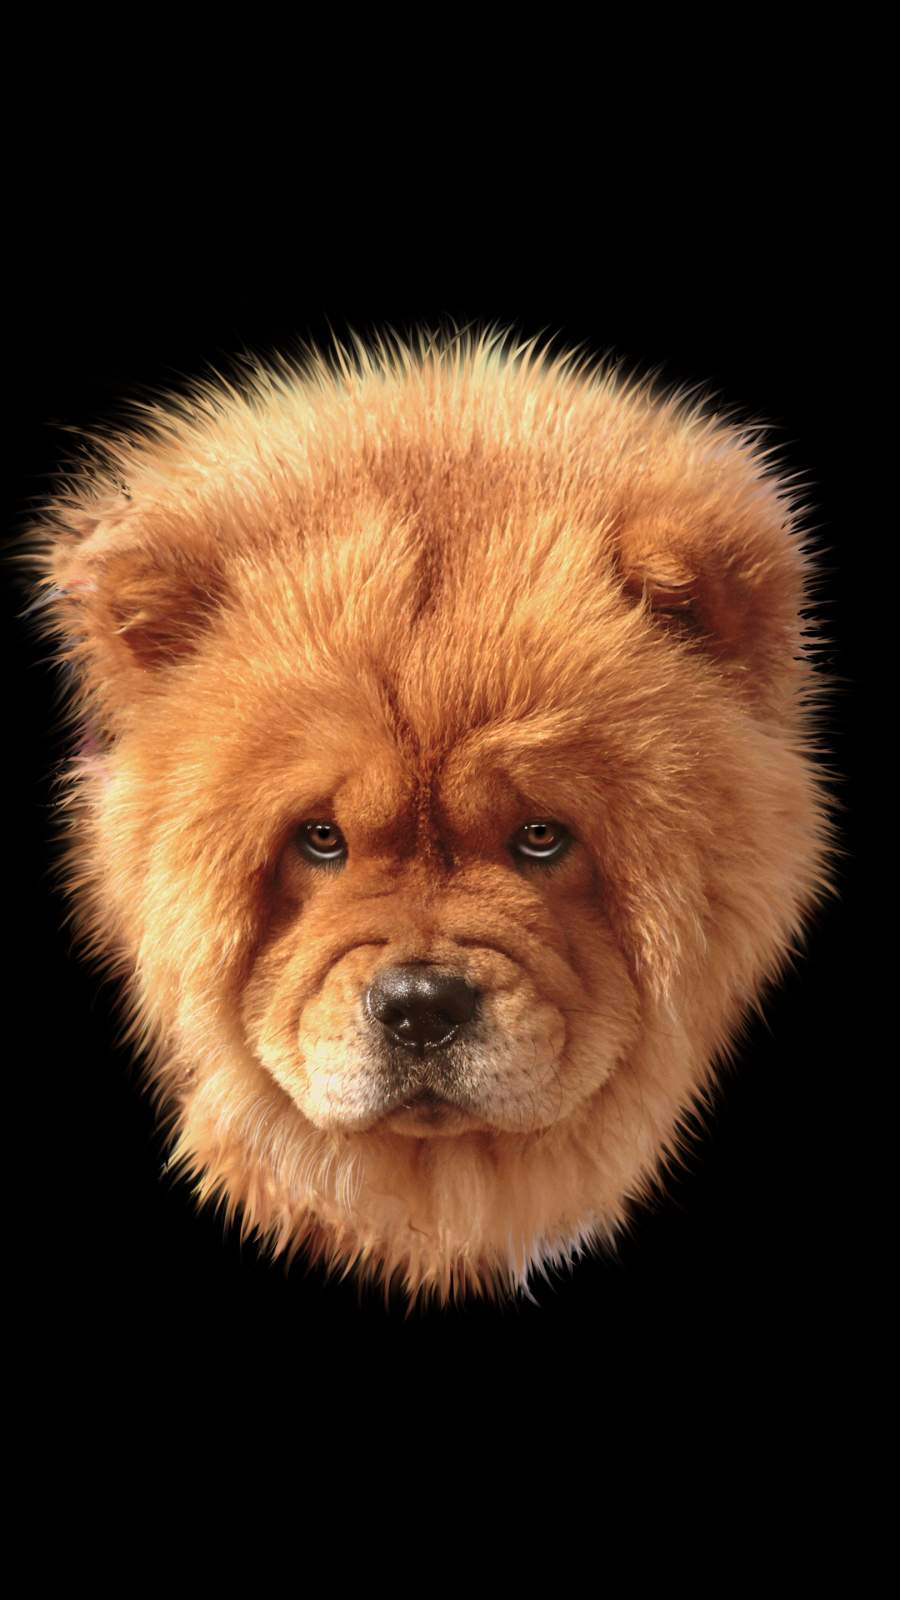 Lion Dog iPhone Wallpaper